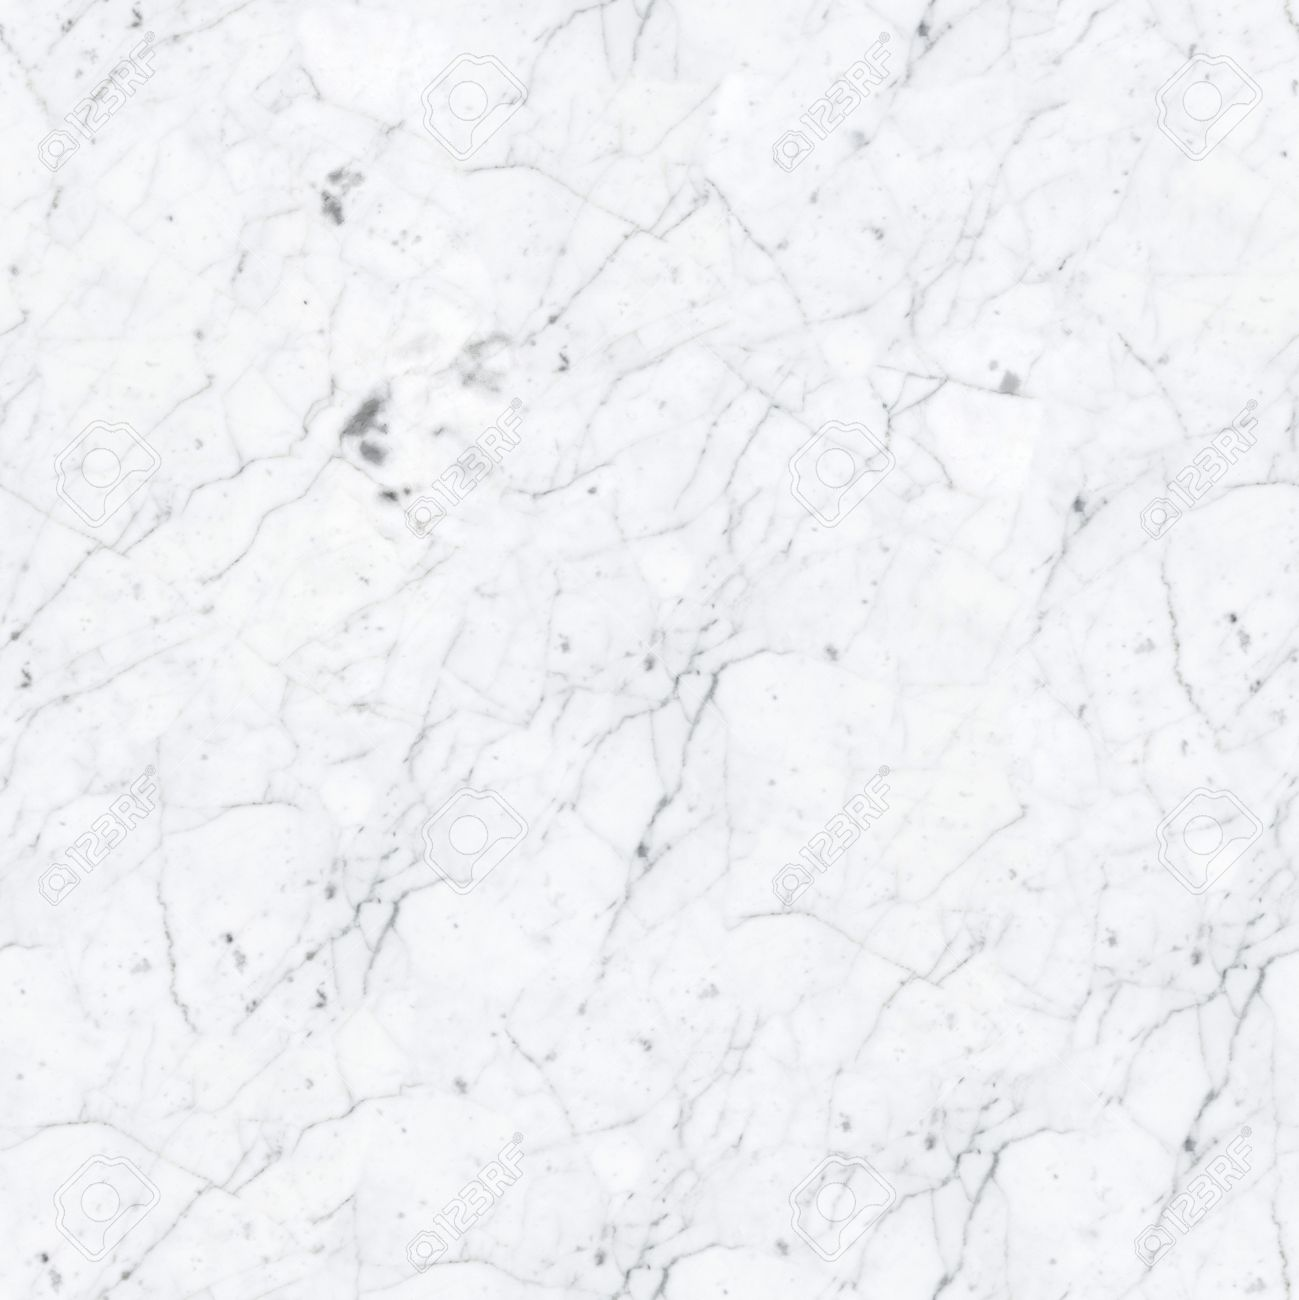 Close Up Of White Marble Texture Seamless Square Background Stock Photo Picture And Royalty Free Image Image 79675849